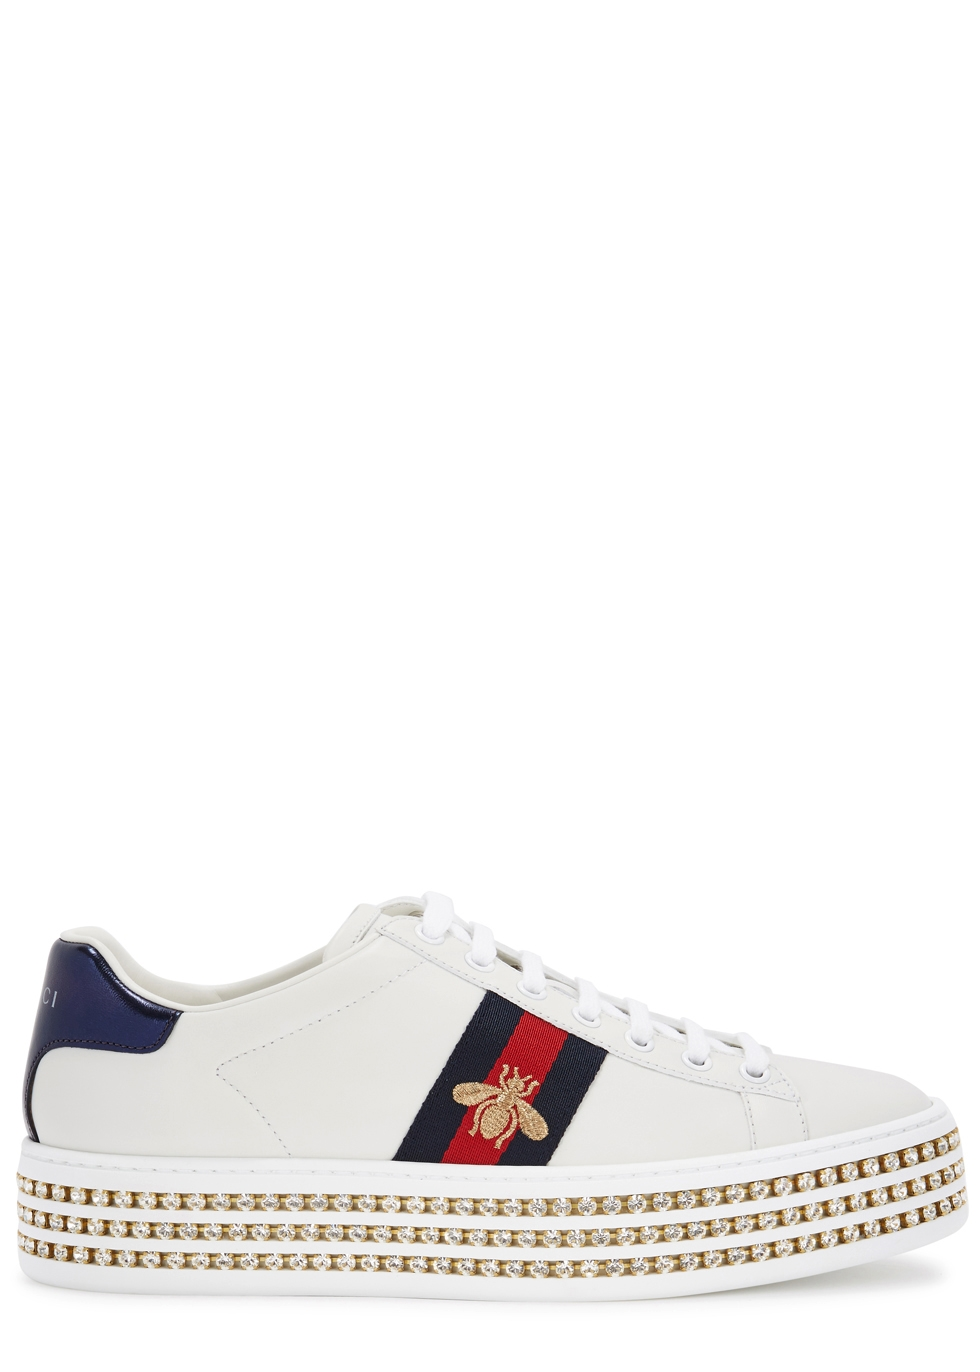 Ace Crystal-Embellished Flatform Trainers in 9095 White